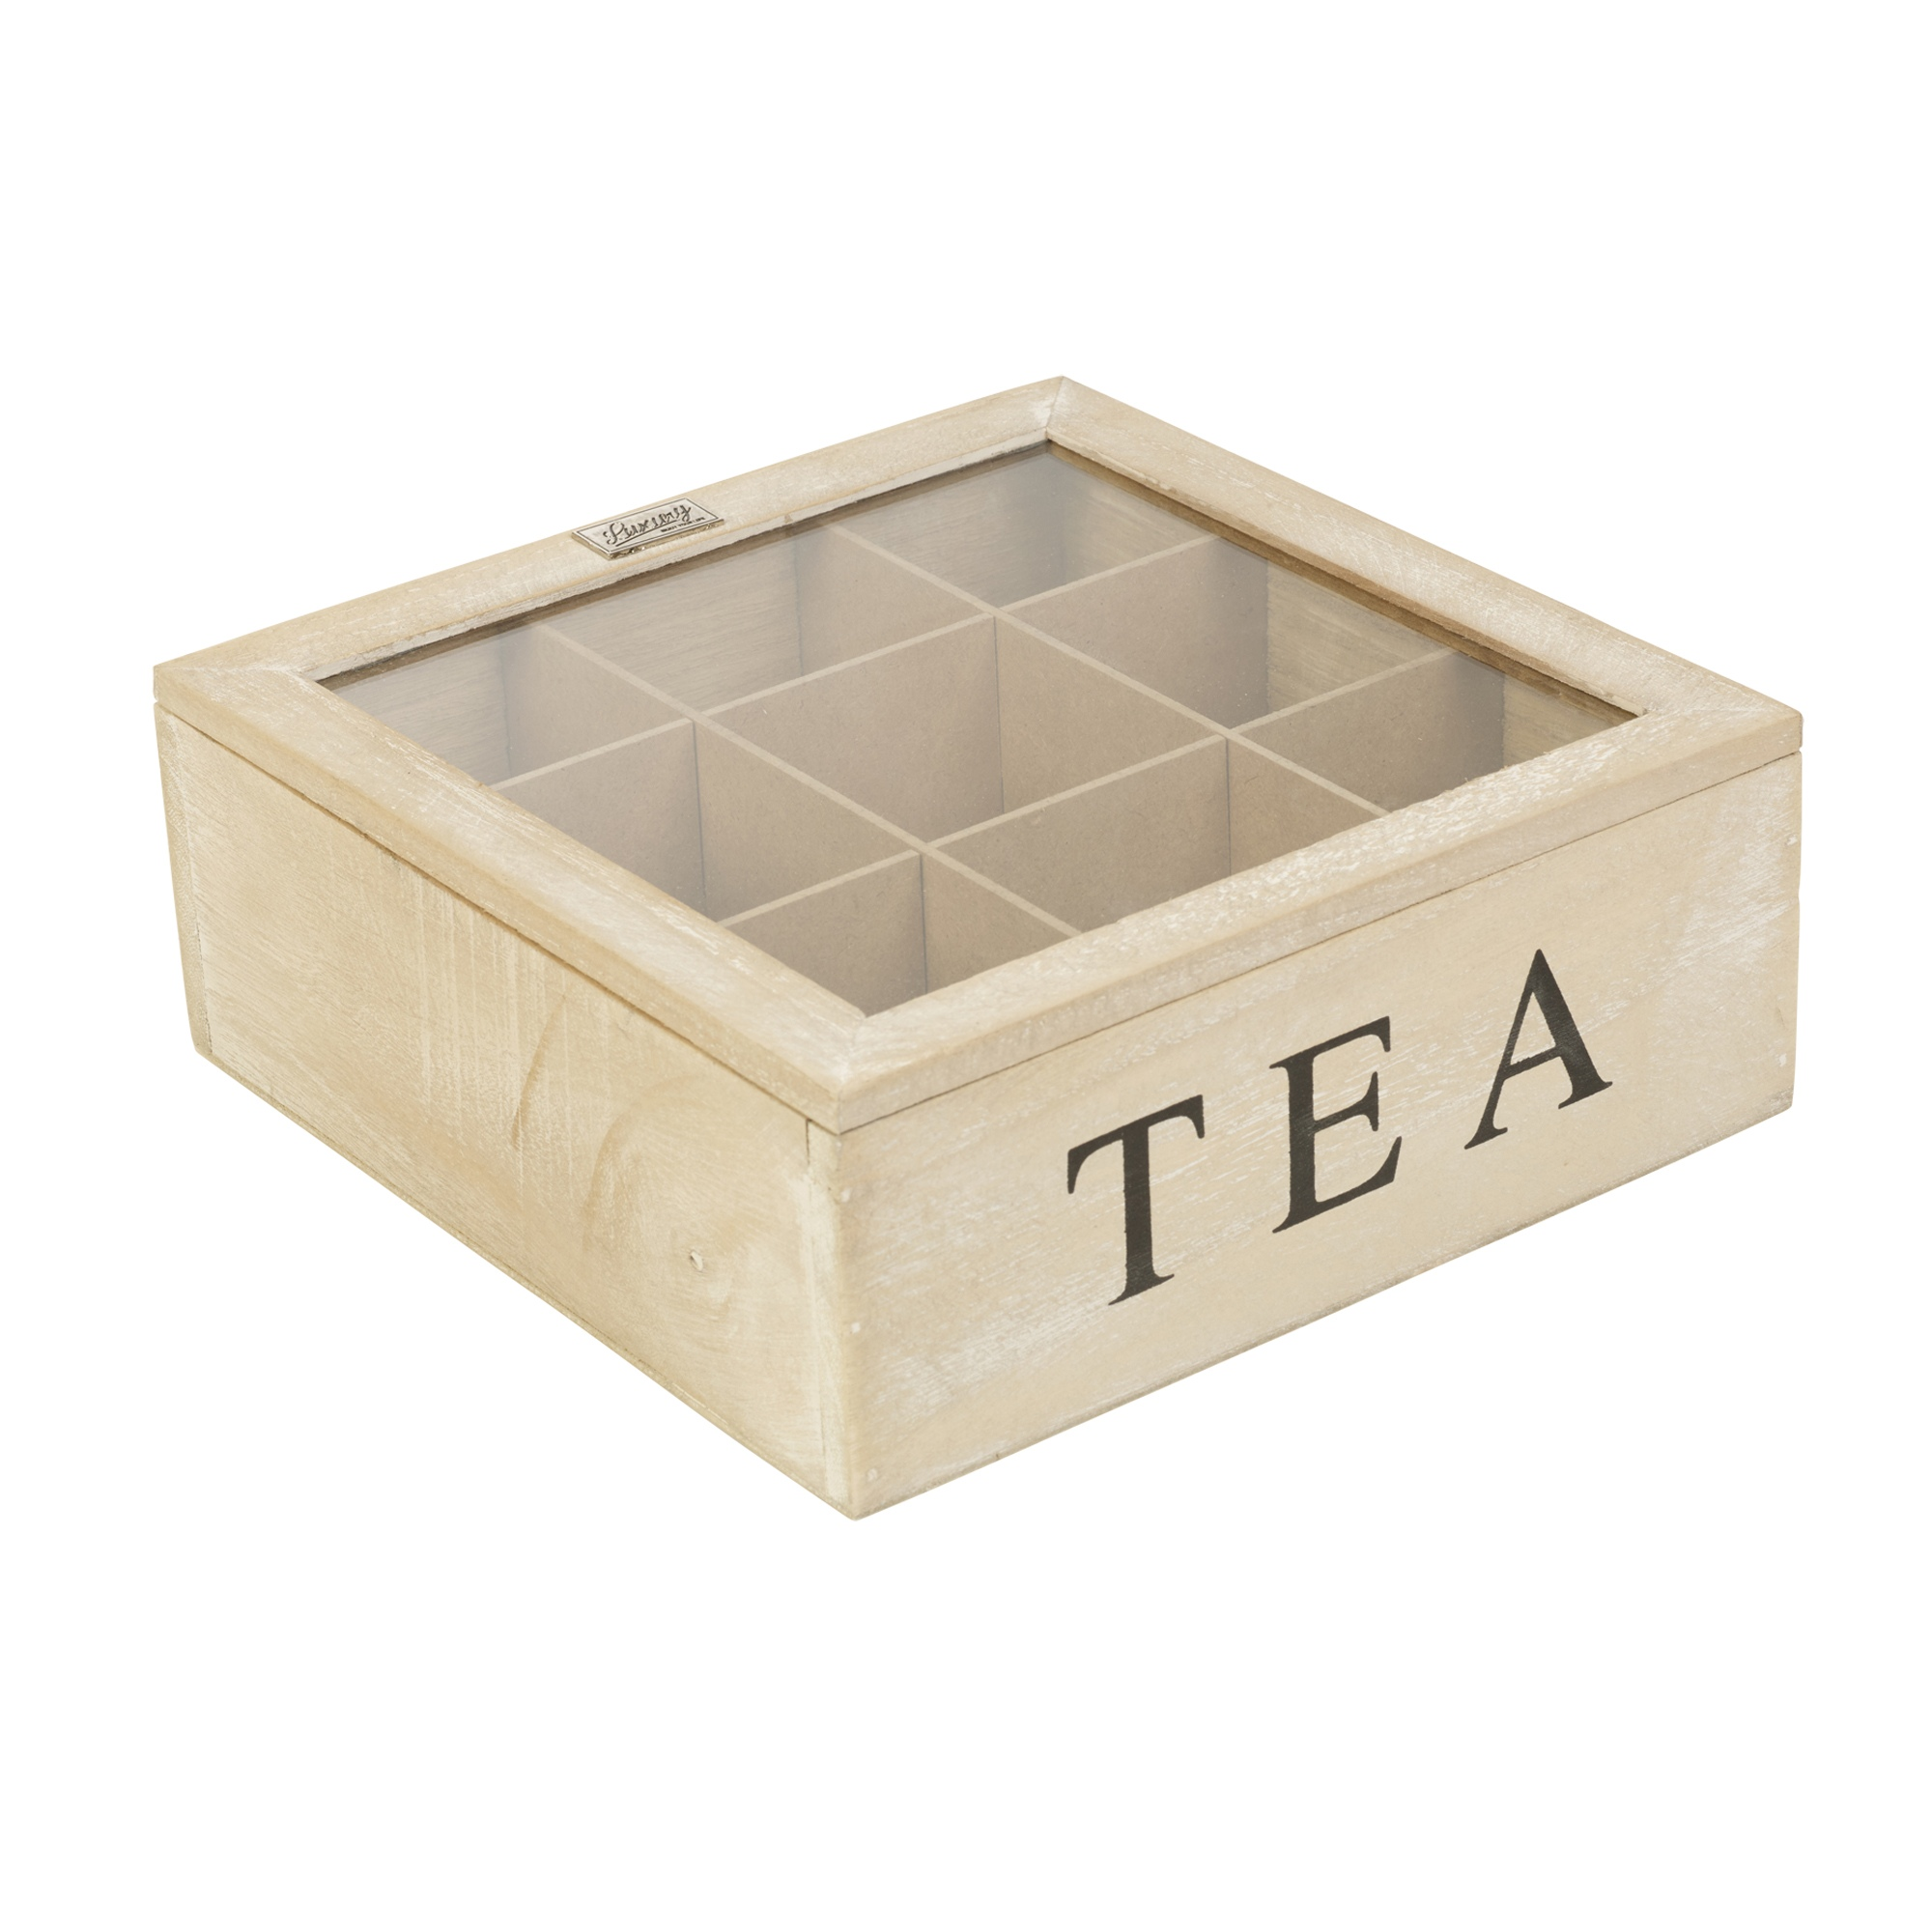 5 6 or 9 compartments wooden tea box hinged lid tea bag storage box kitchen home ebay. Black Bedroom Furniture Sets. Home Design Ideas